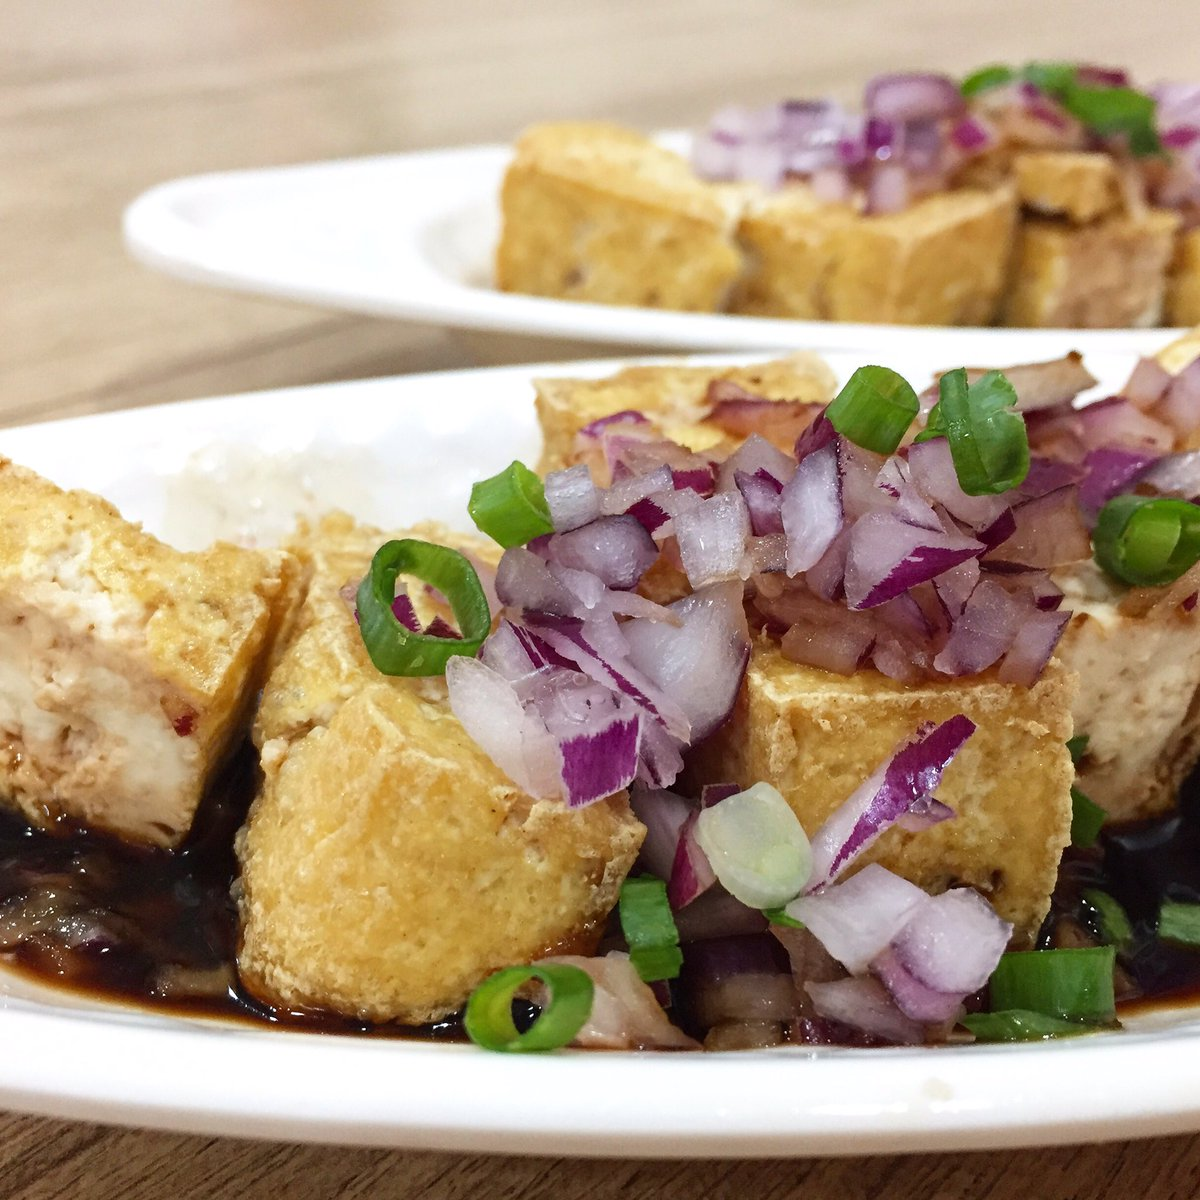 Fried Tofu  #foodphotography #foodporn #mobilephotography  #iphoneography  #chinesecuisine https://t.co/8AGSWwEoLE